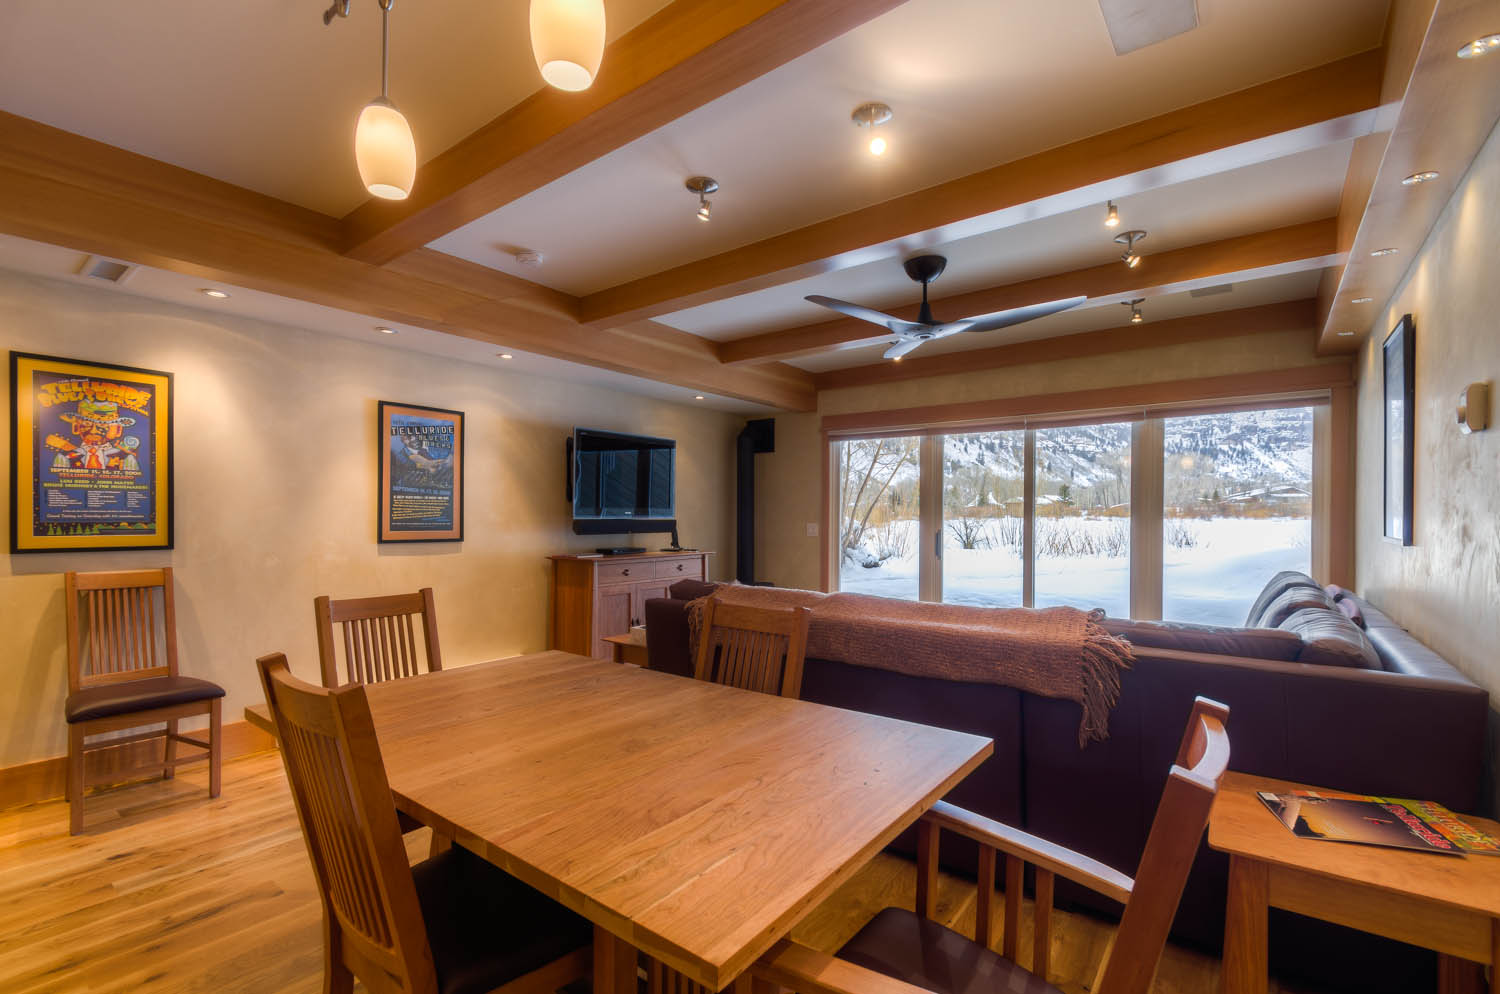 Dining Room Set, Sectional Sofa, Ceiling Fan, and Sliding Doors to the Patio